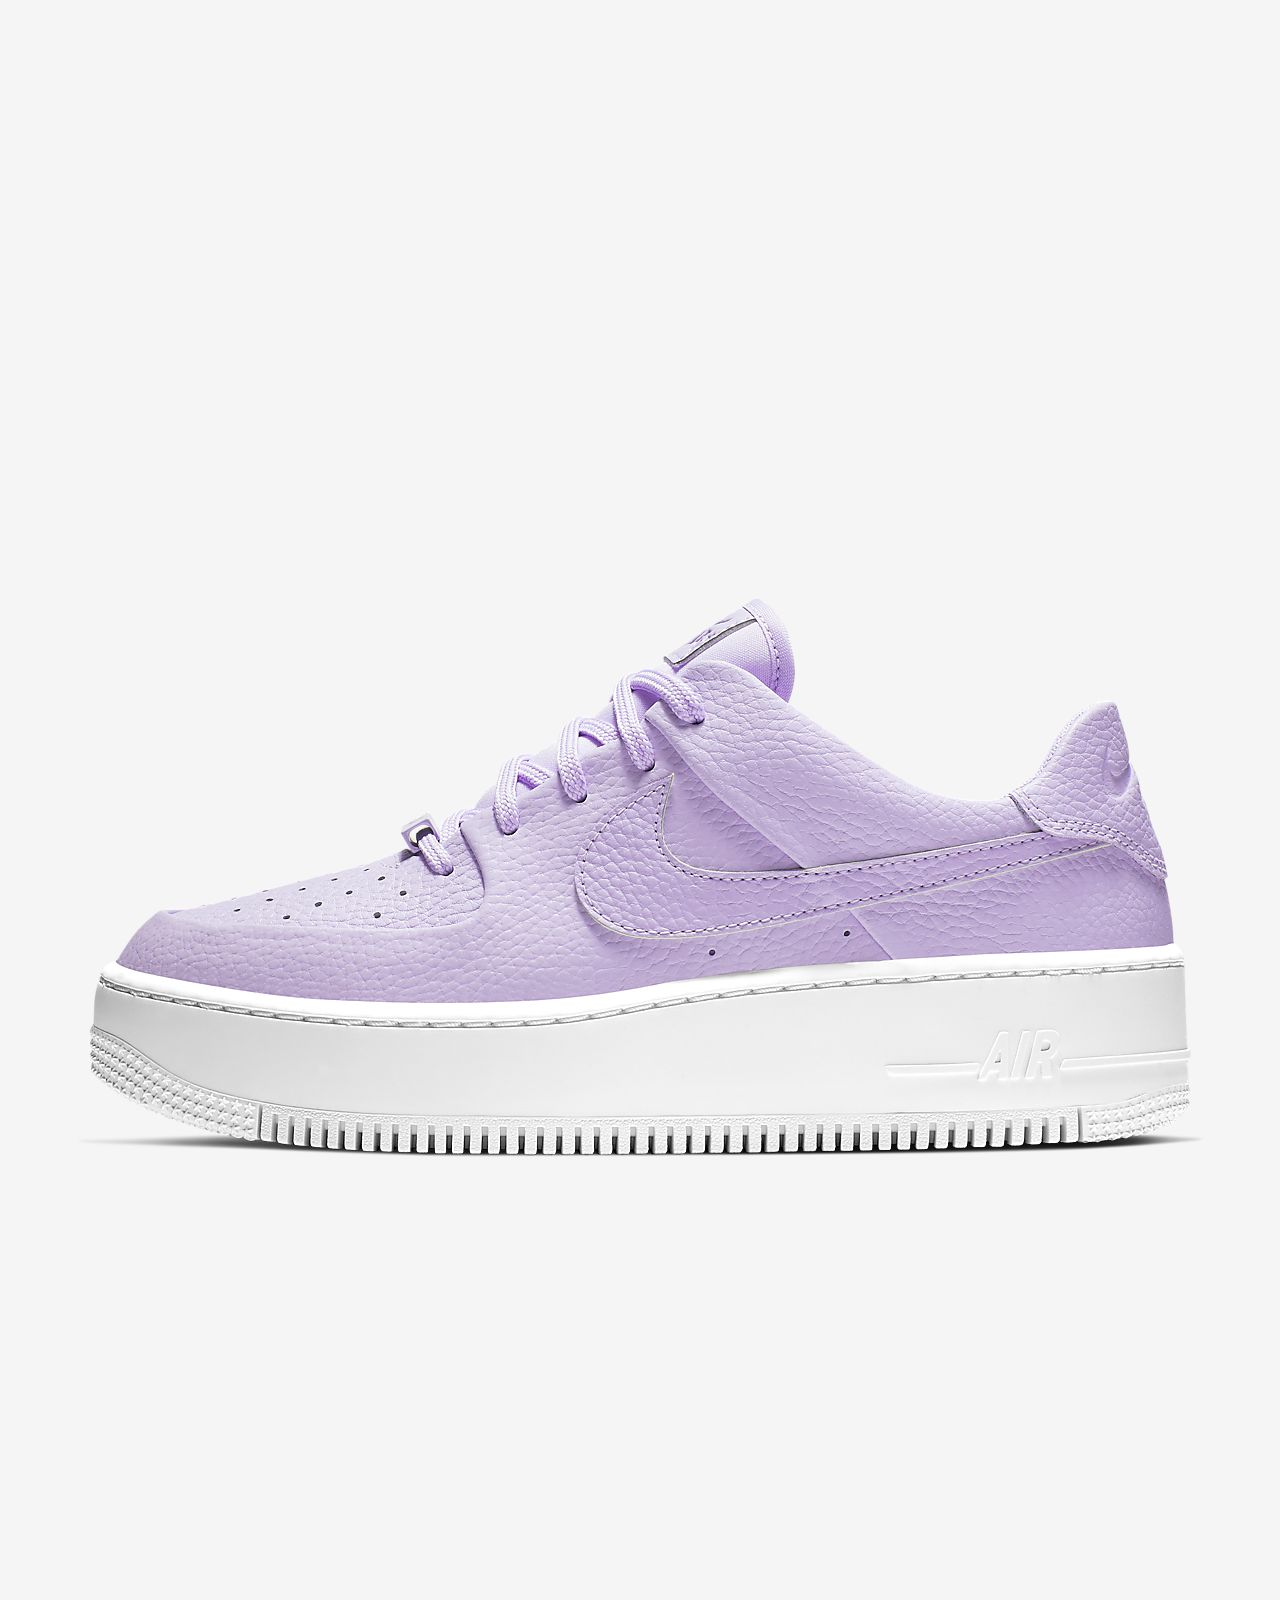 official photos 3e7b3 28223 ... Chaussure Nike Air Force 1 Sage Low pour Femme